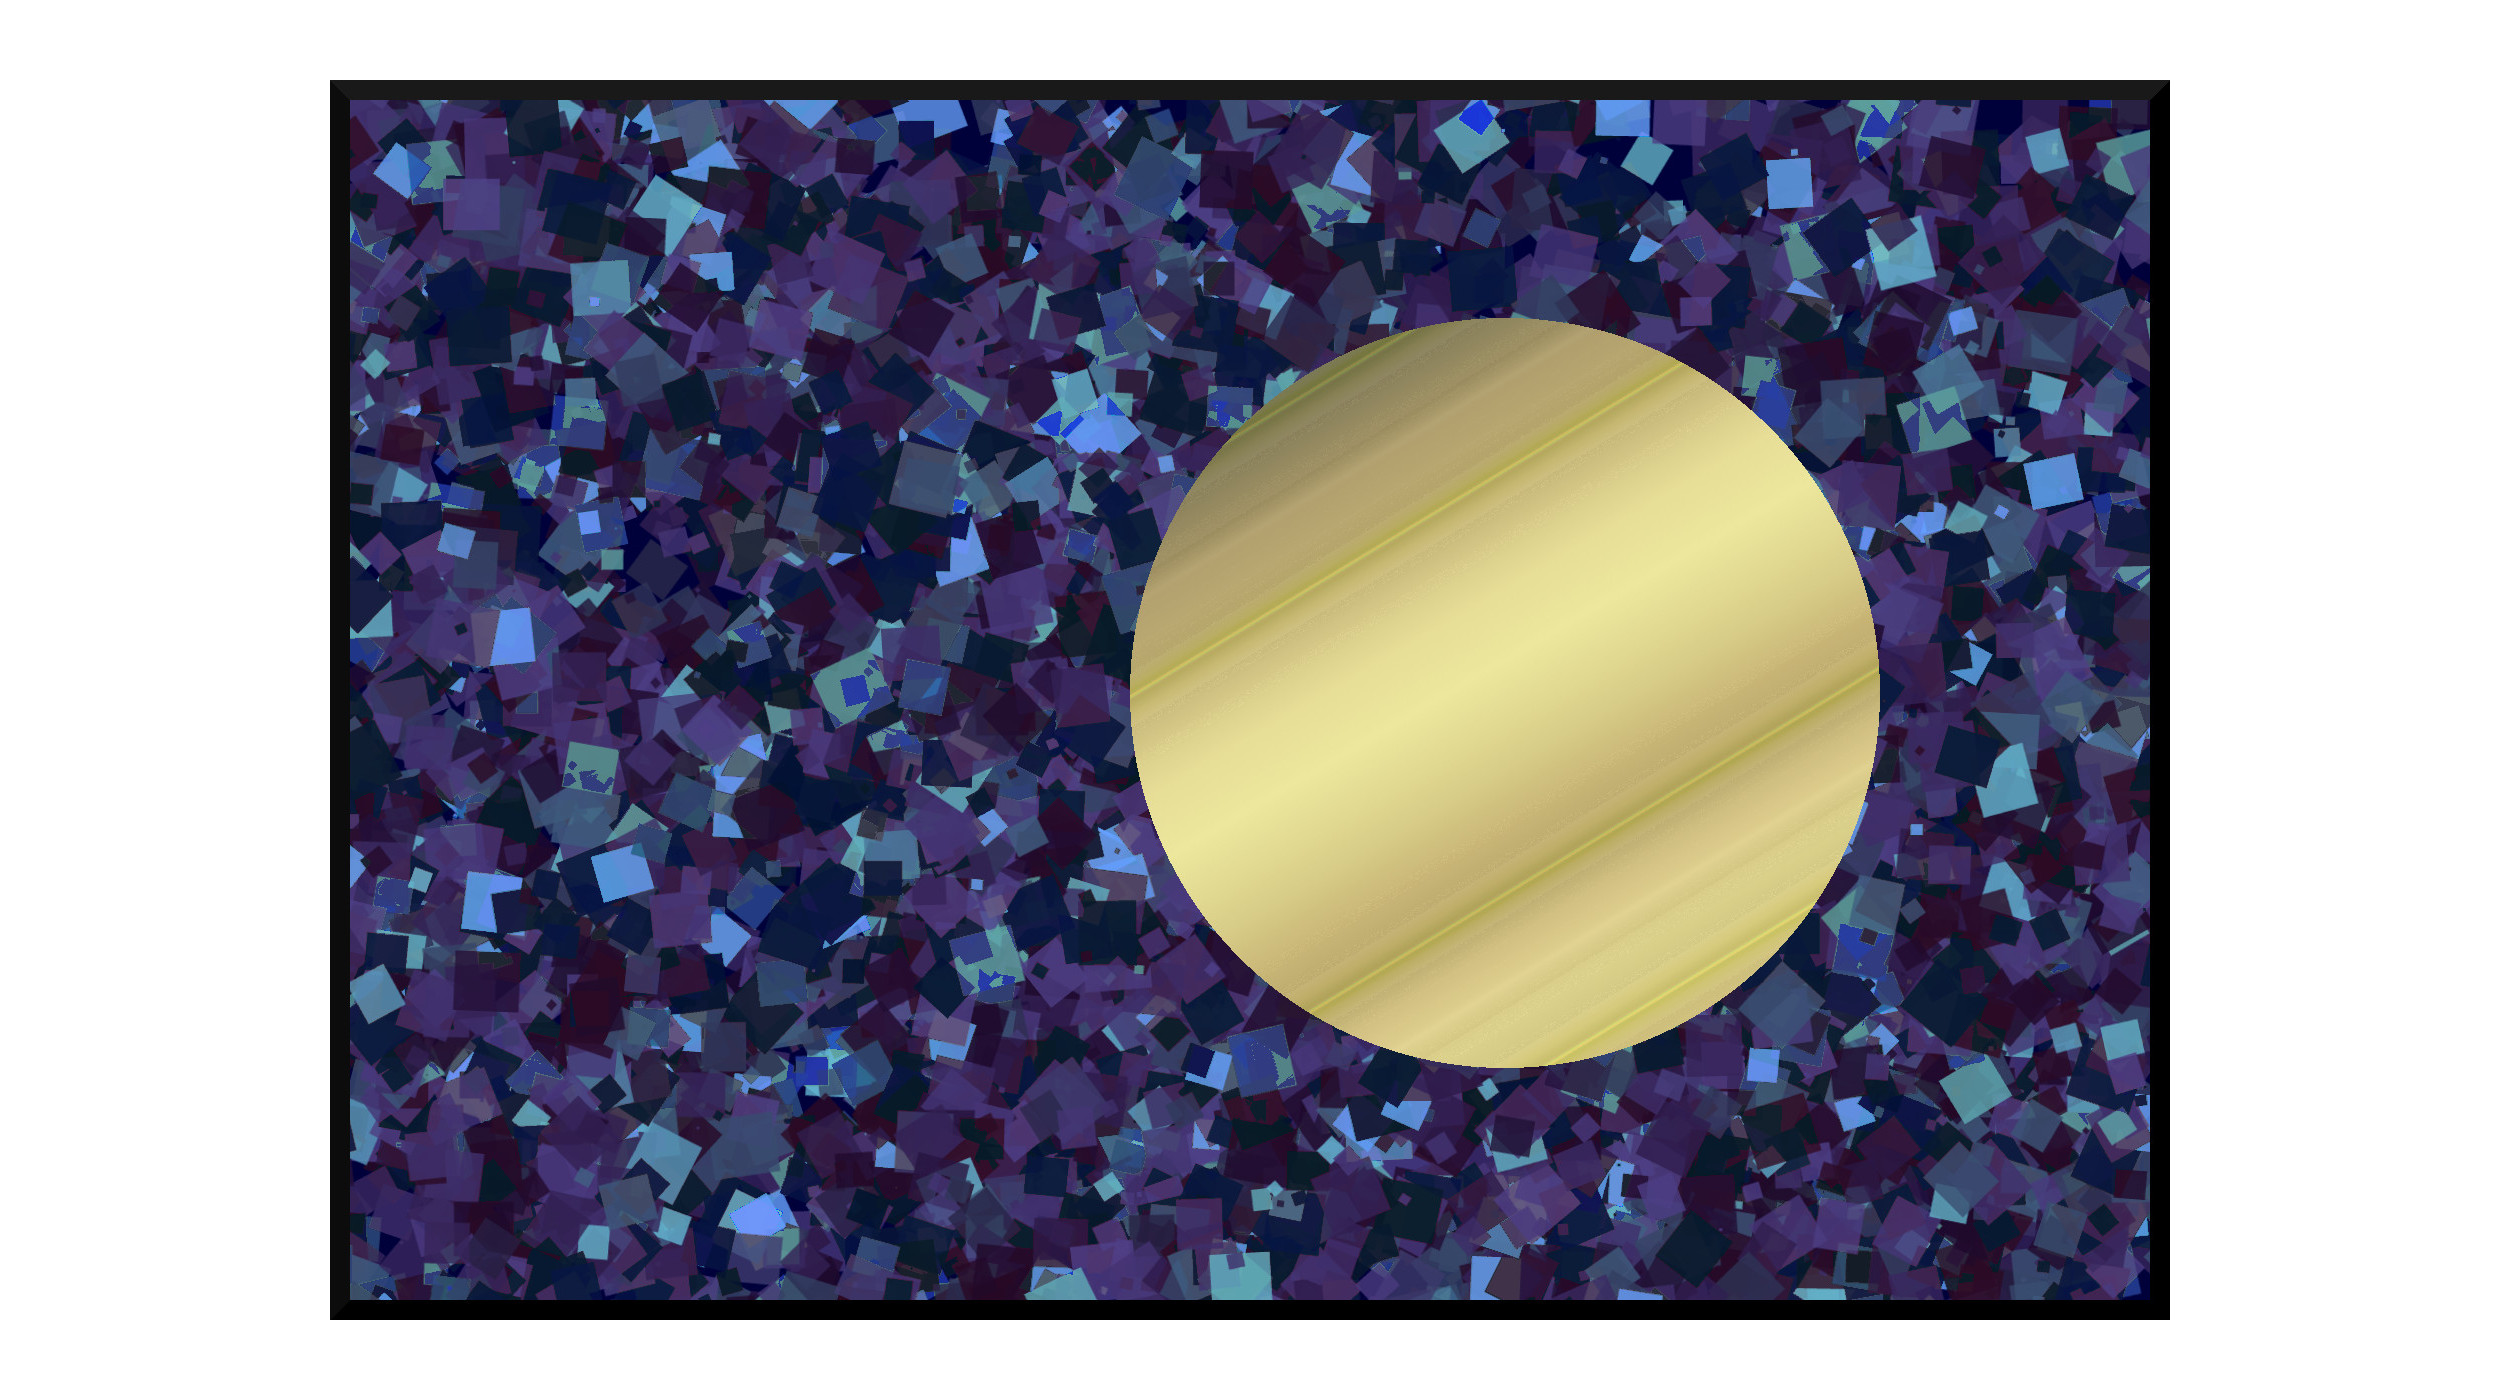 Illustration: venus glowing gold in outer space